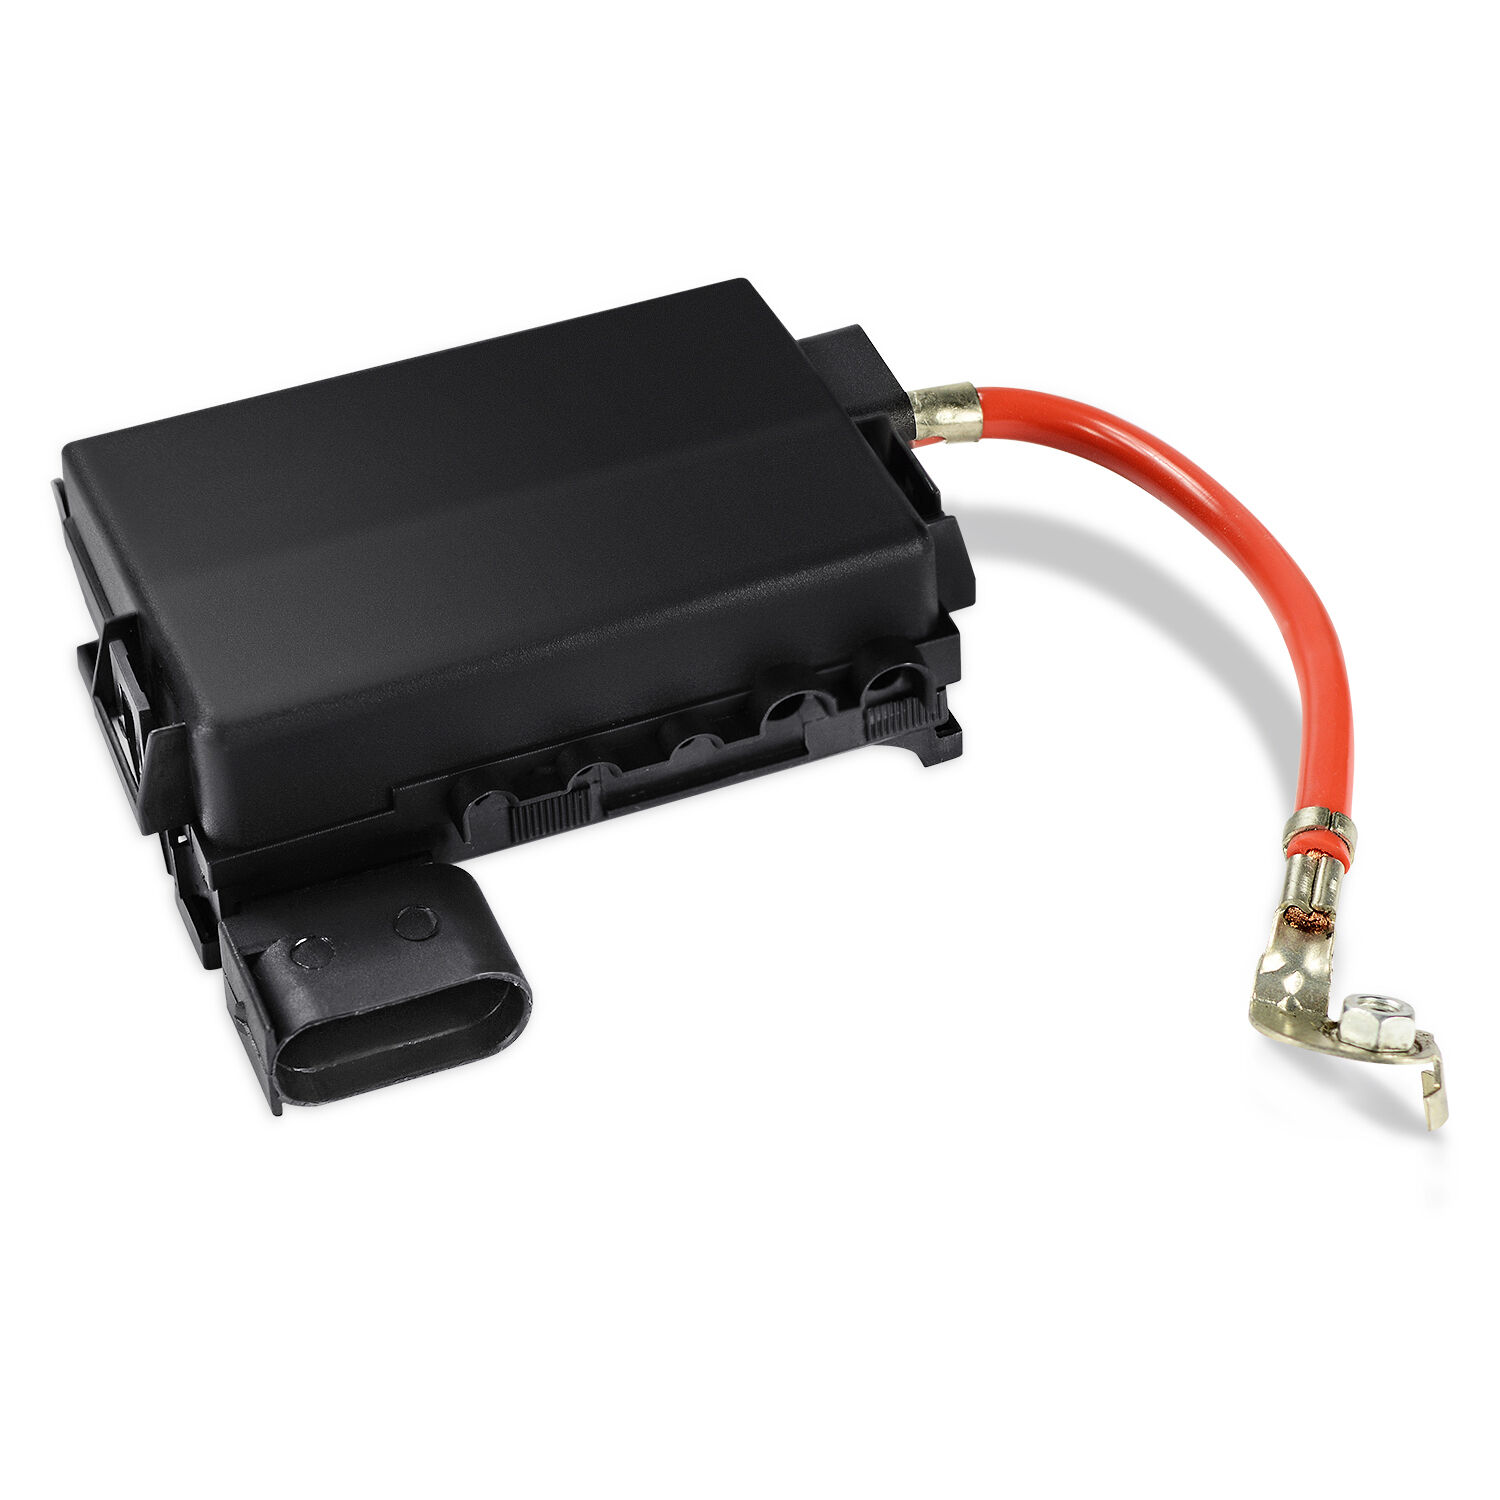 hight resolution of new fuse box battery terminal 1j0937617d 1j0937550 for vw jetta golf mk4 beetle 6 6 of 9